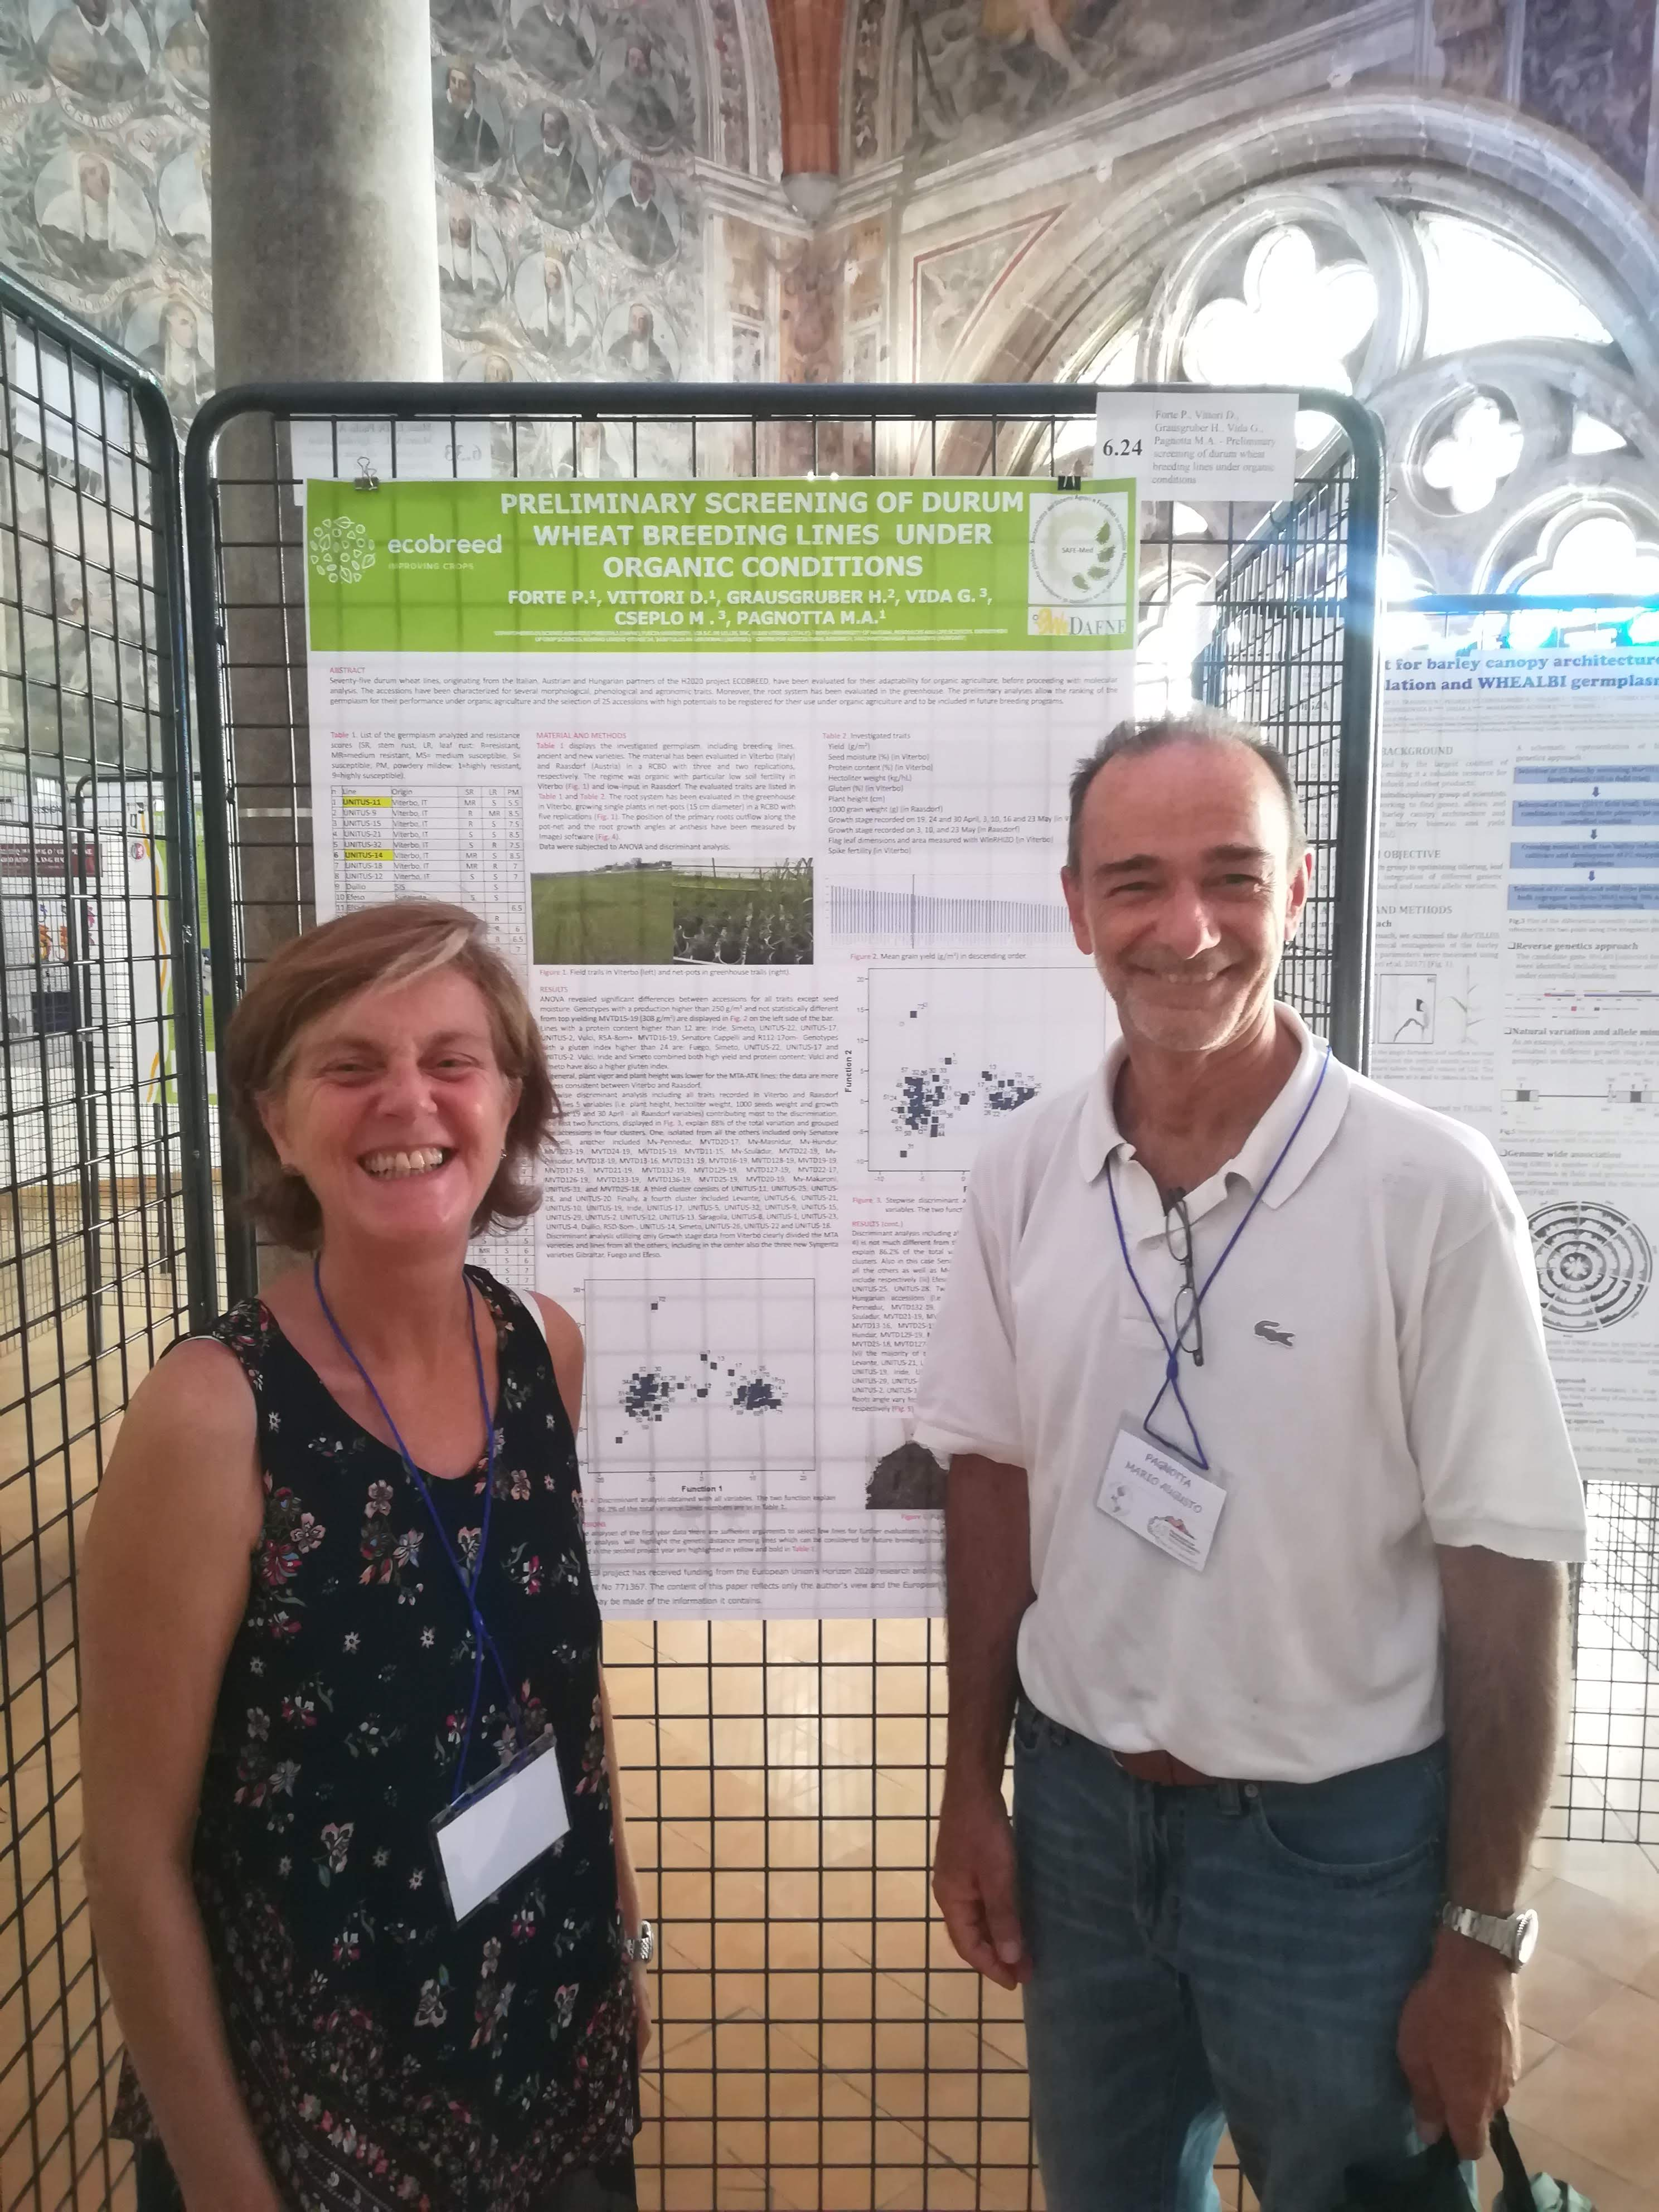 ECOBREED at the 53 Annual Congress of the Italian Society of Agricultural Genetics